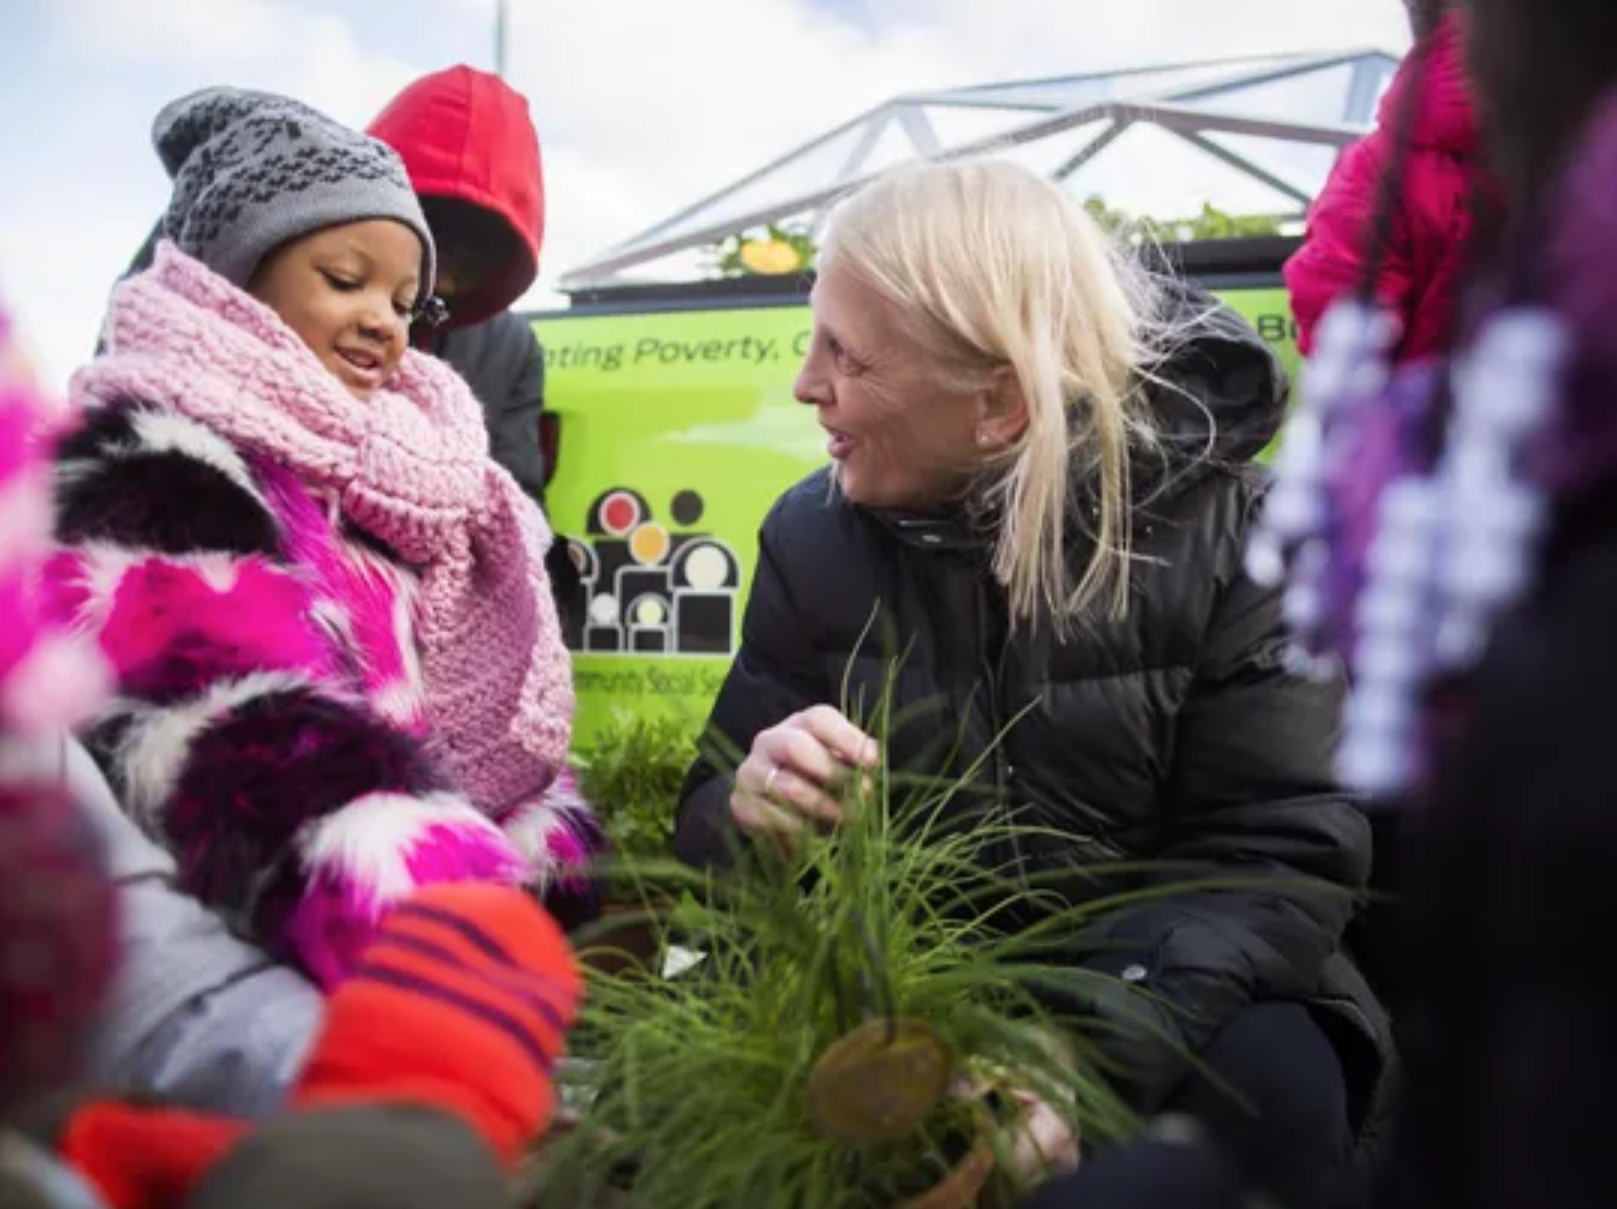 Rev. Faith Fowler, executive director of Cass Community Social Services, speaking with a student in the Ford Mobile Farm